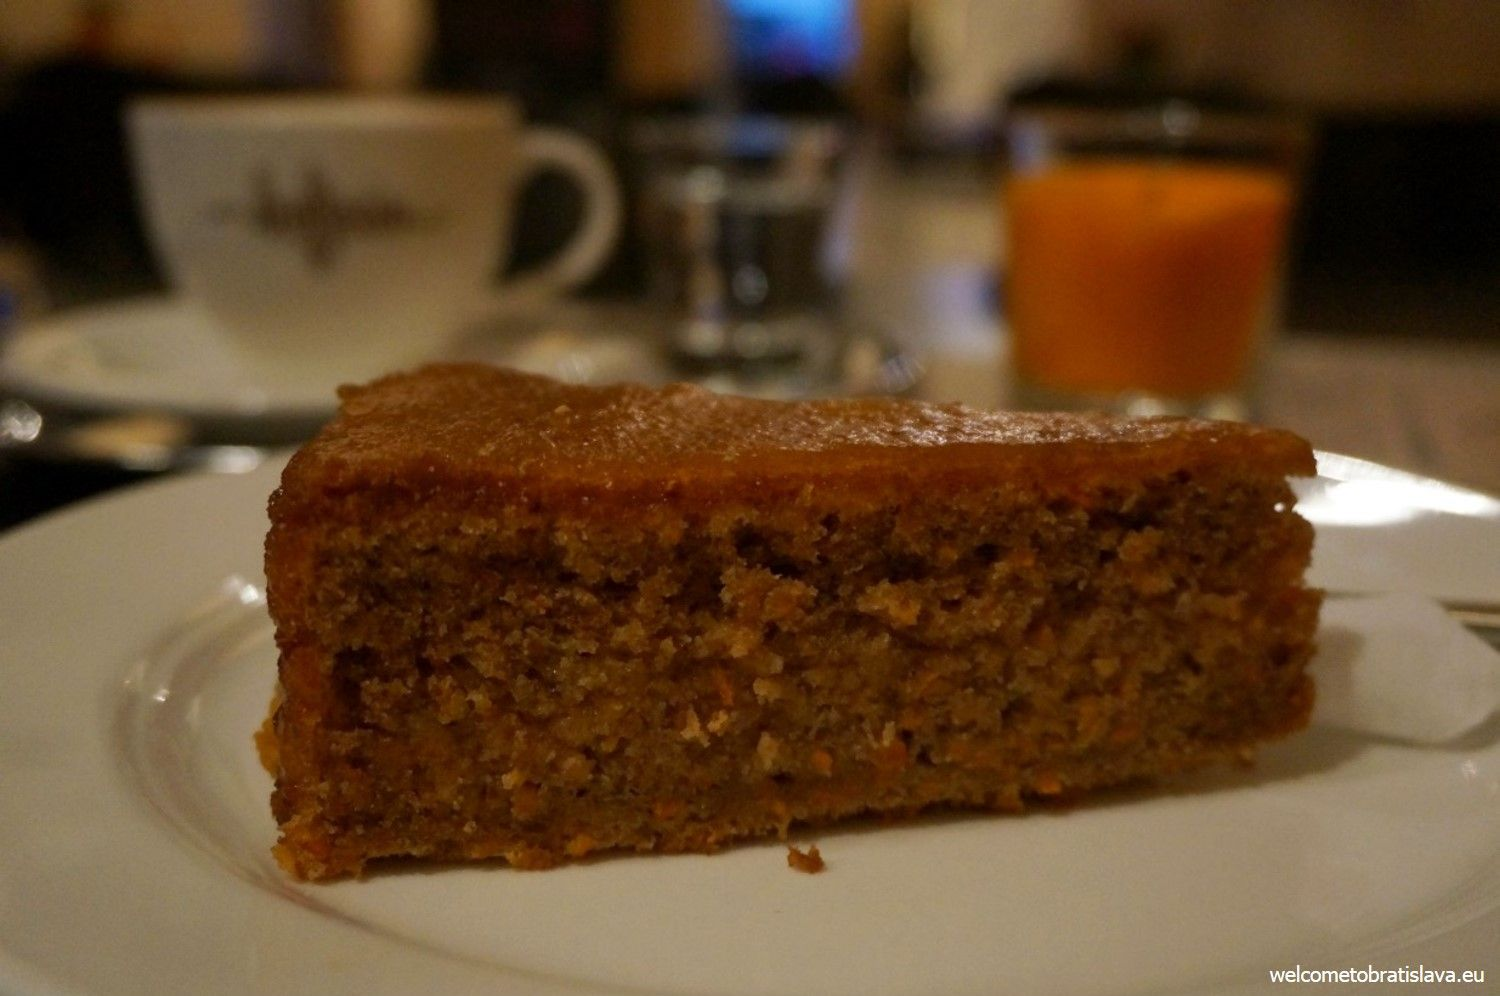 The fit carrot cake in Fúz